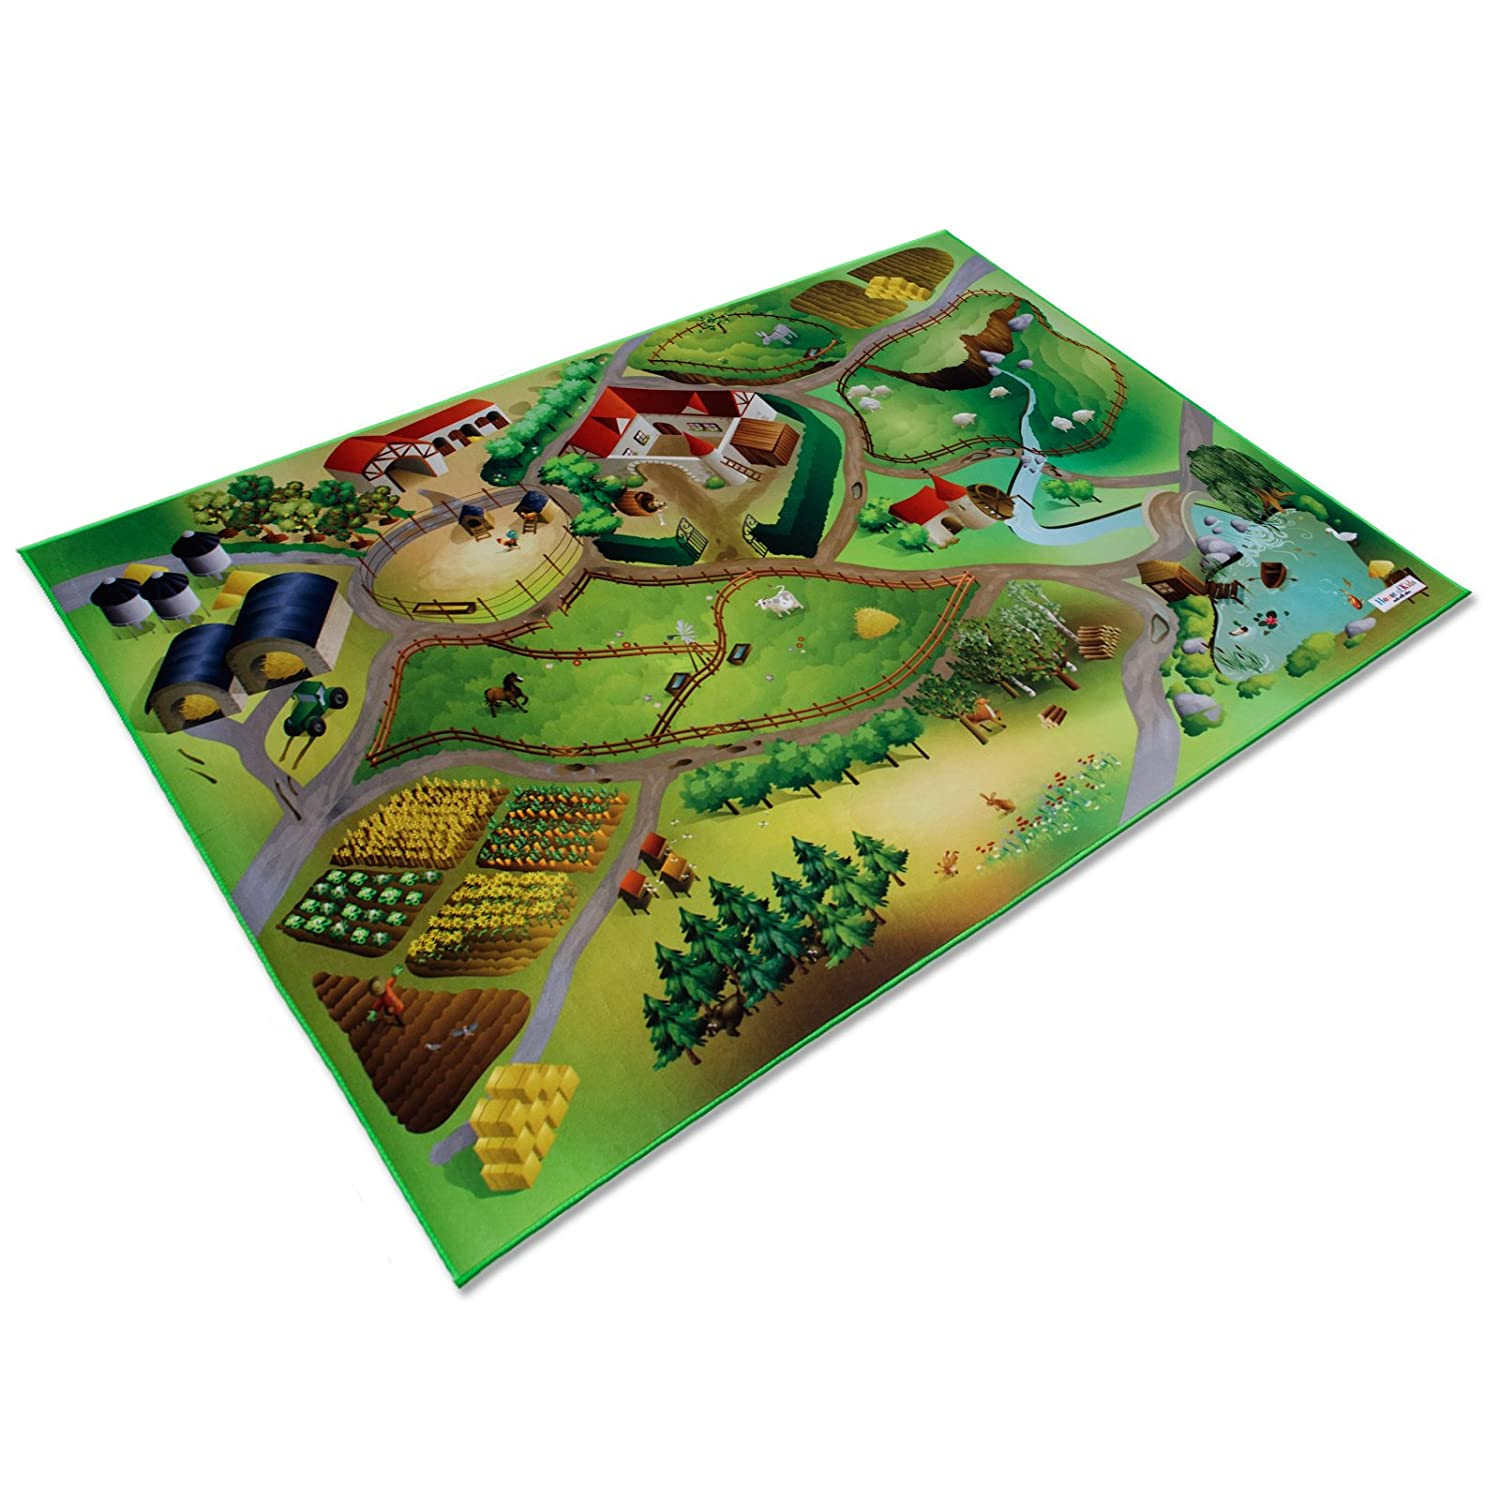 casa pura Interconnectable Childrens Play Mat - 100x150cm | 4 Designs Available - Farm Yard Design